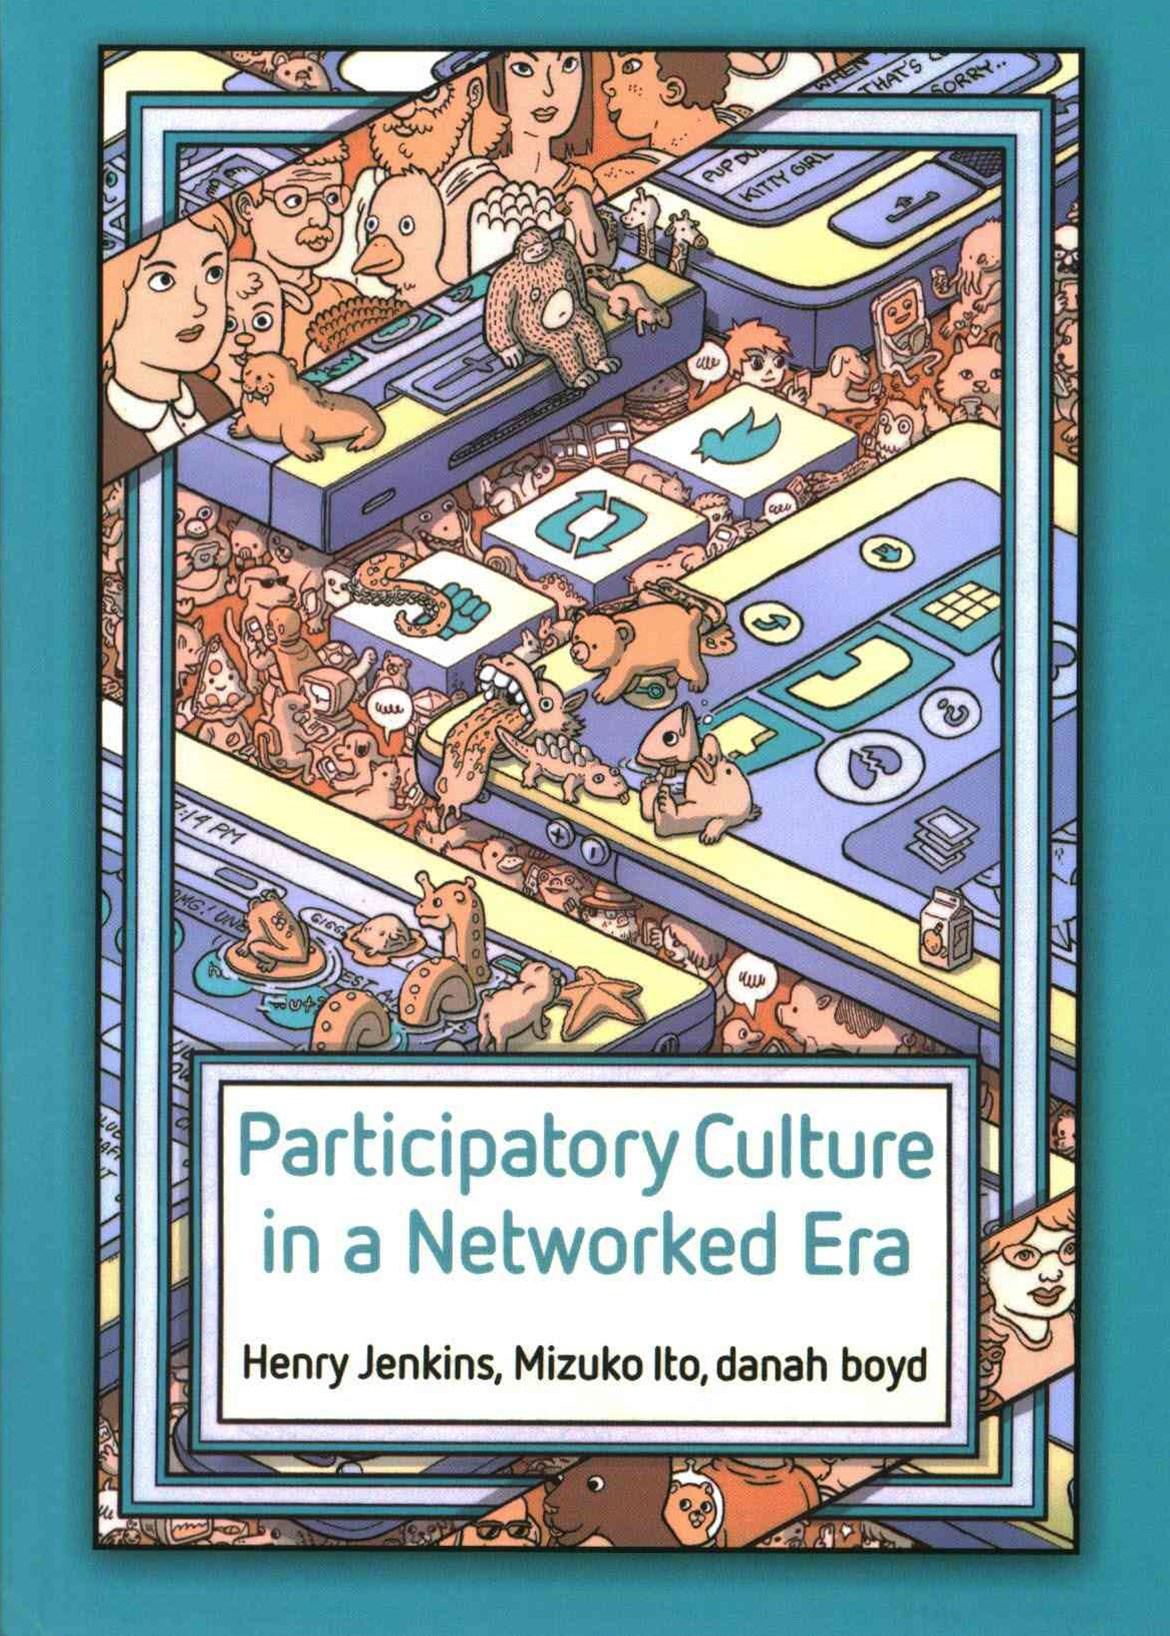 Participatory Culture in a Networked Era - a      Conversation on Youth, Learning, Commerce, and